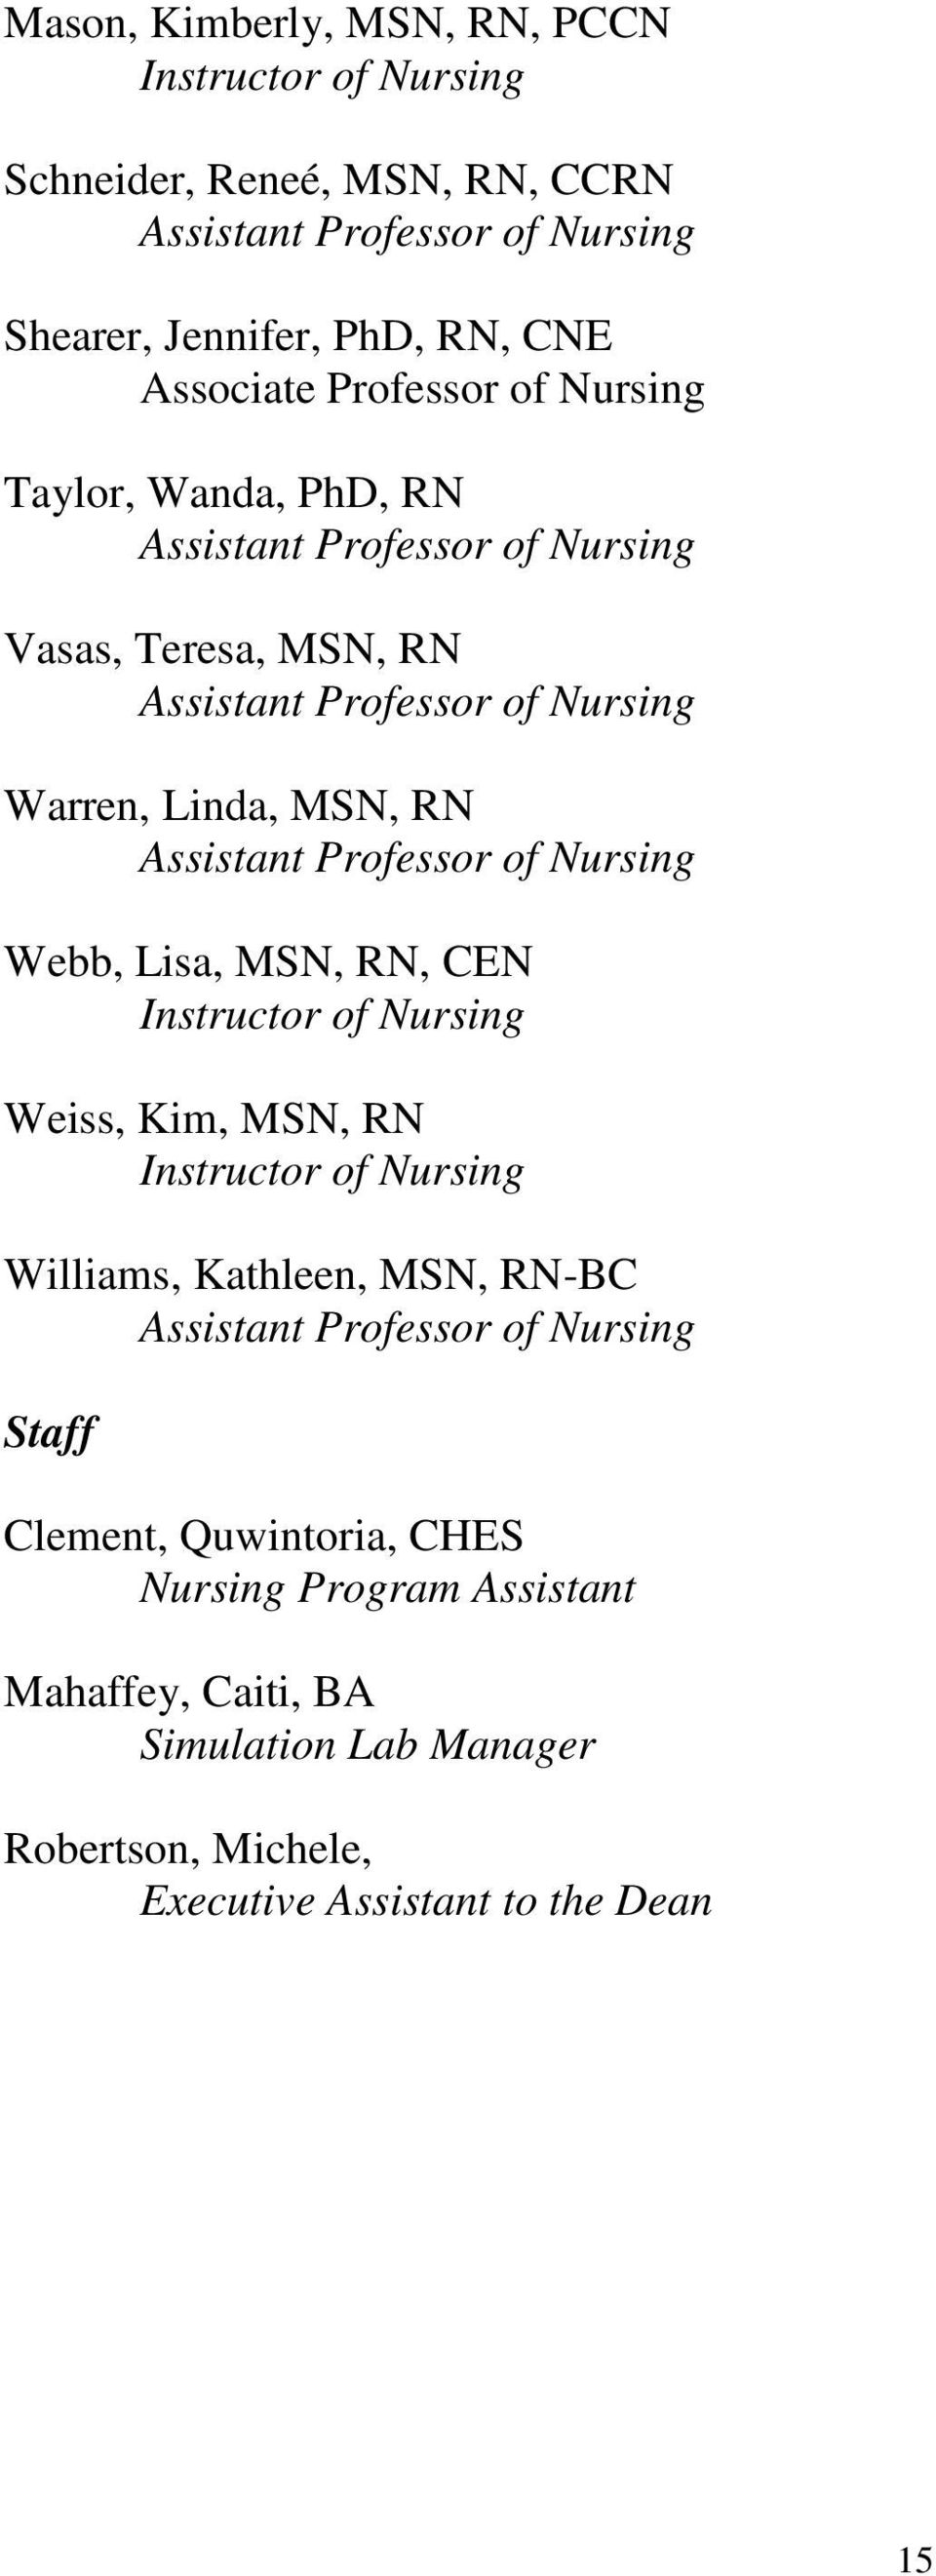 Professor of Nursing Webb, Lisa, MSN, RN, CEN Instructor of Nursing Weiss, Kim, MSN, RN Instructor of Nursing Williams, Kathleen, MSN, RN-BC Assistant Professor